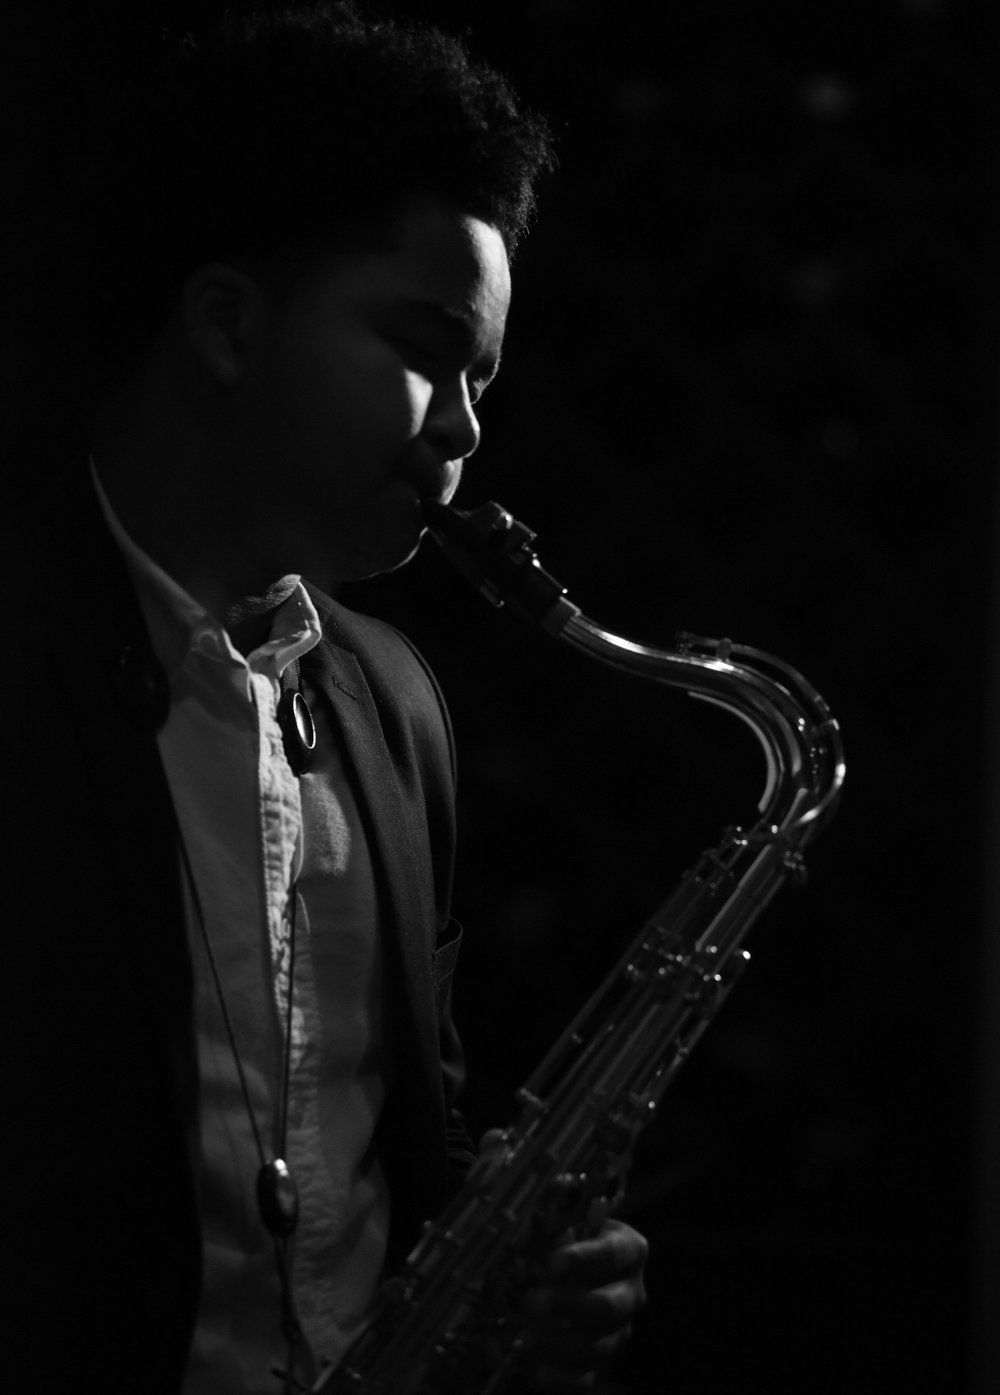 """Winston Bell began playing bass at the age of six while attending Dilworth Elementary School. During the summer of 2011, Winston attended the Duquesne University Music Jumpstart Program where he began playing the alto saxophone. As the spring of 2013 approached, Winston's knowledge and technique had grown well beyond his young age. His robust and soulful tone plays tribute to the jazz greats like John Coltrane, Wayne Shorter and Maceo Parker while cultivating his own, unique sound. """"To me, playing in a band is like being with people that share the same love and interest for music. When you play with them, they understand the language of music and know how to respond in that language. It also gives me a new opportunity to make music."""" -Winston Bell"""